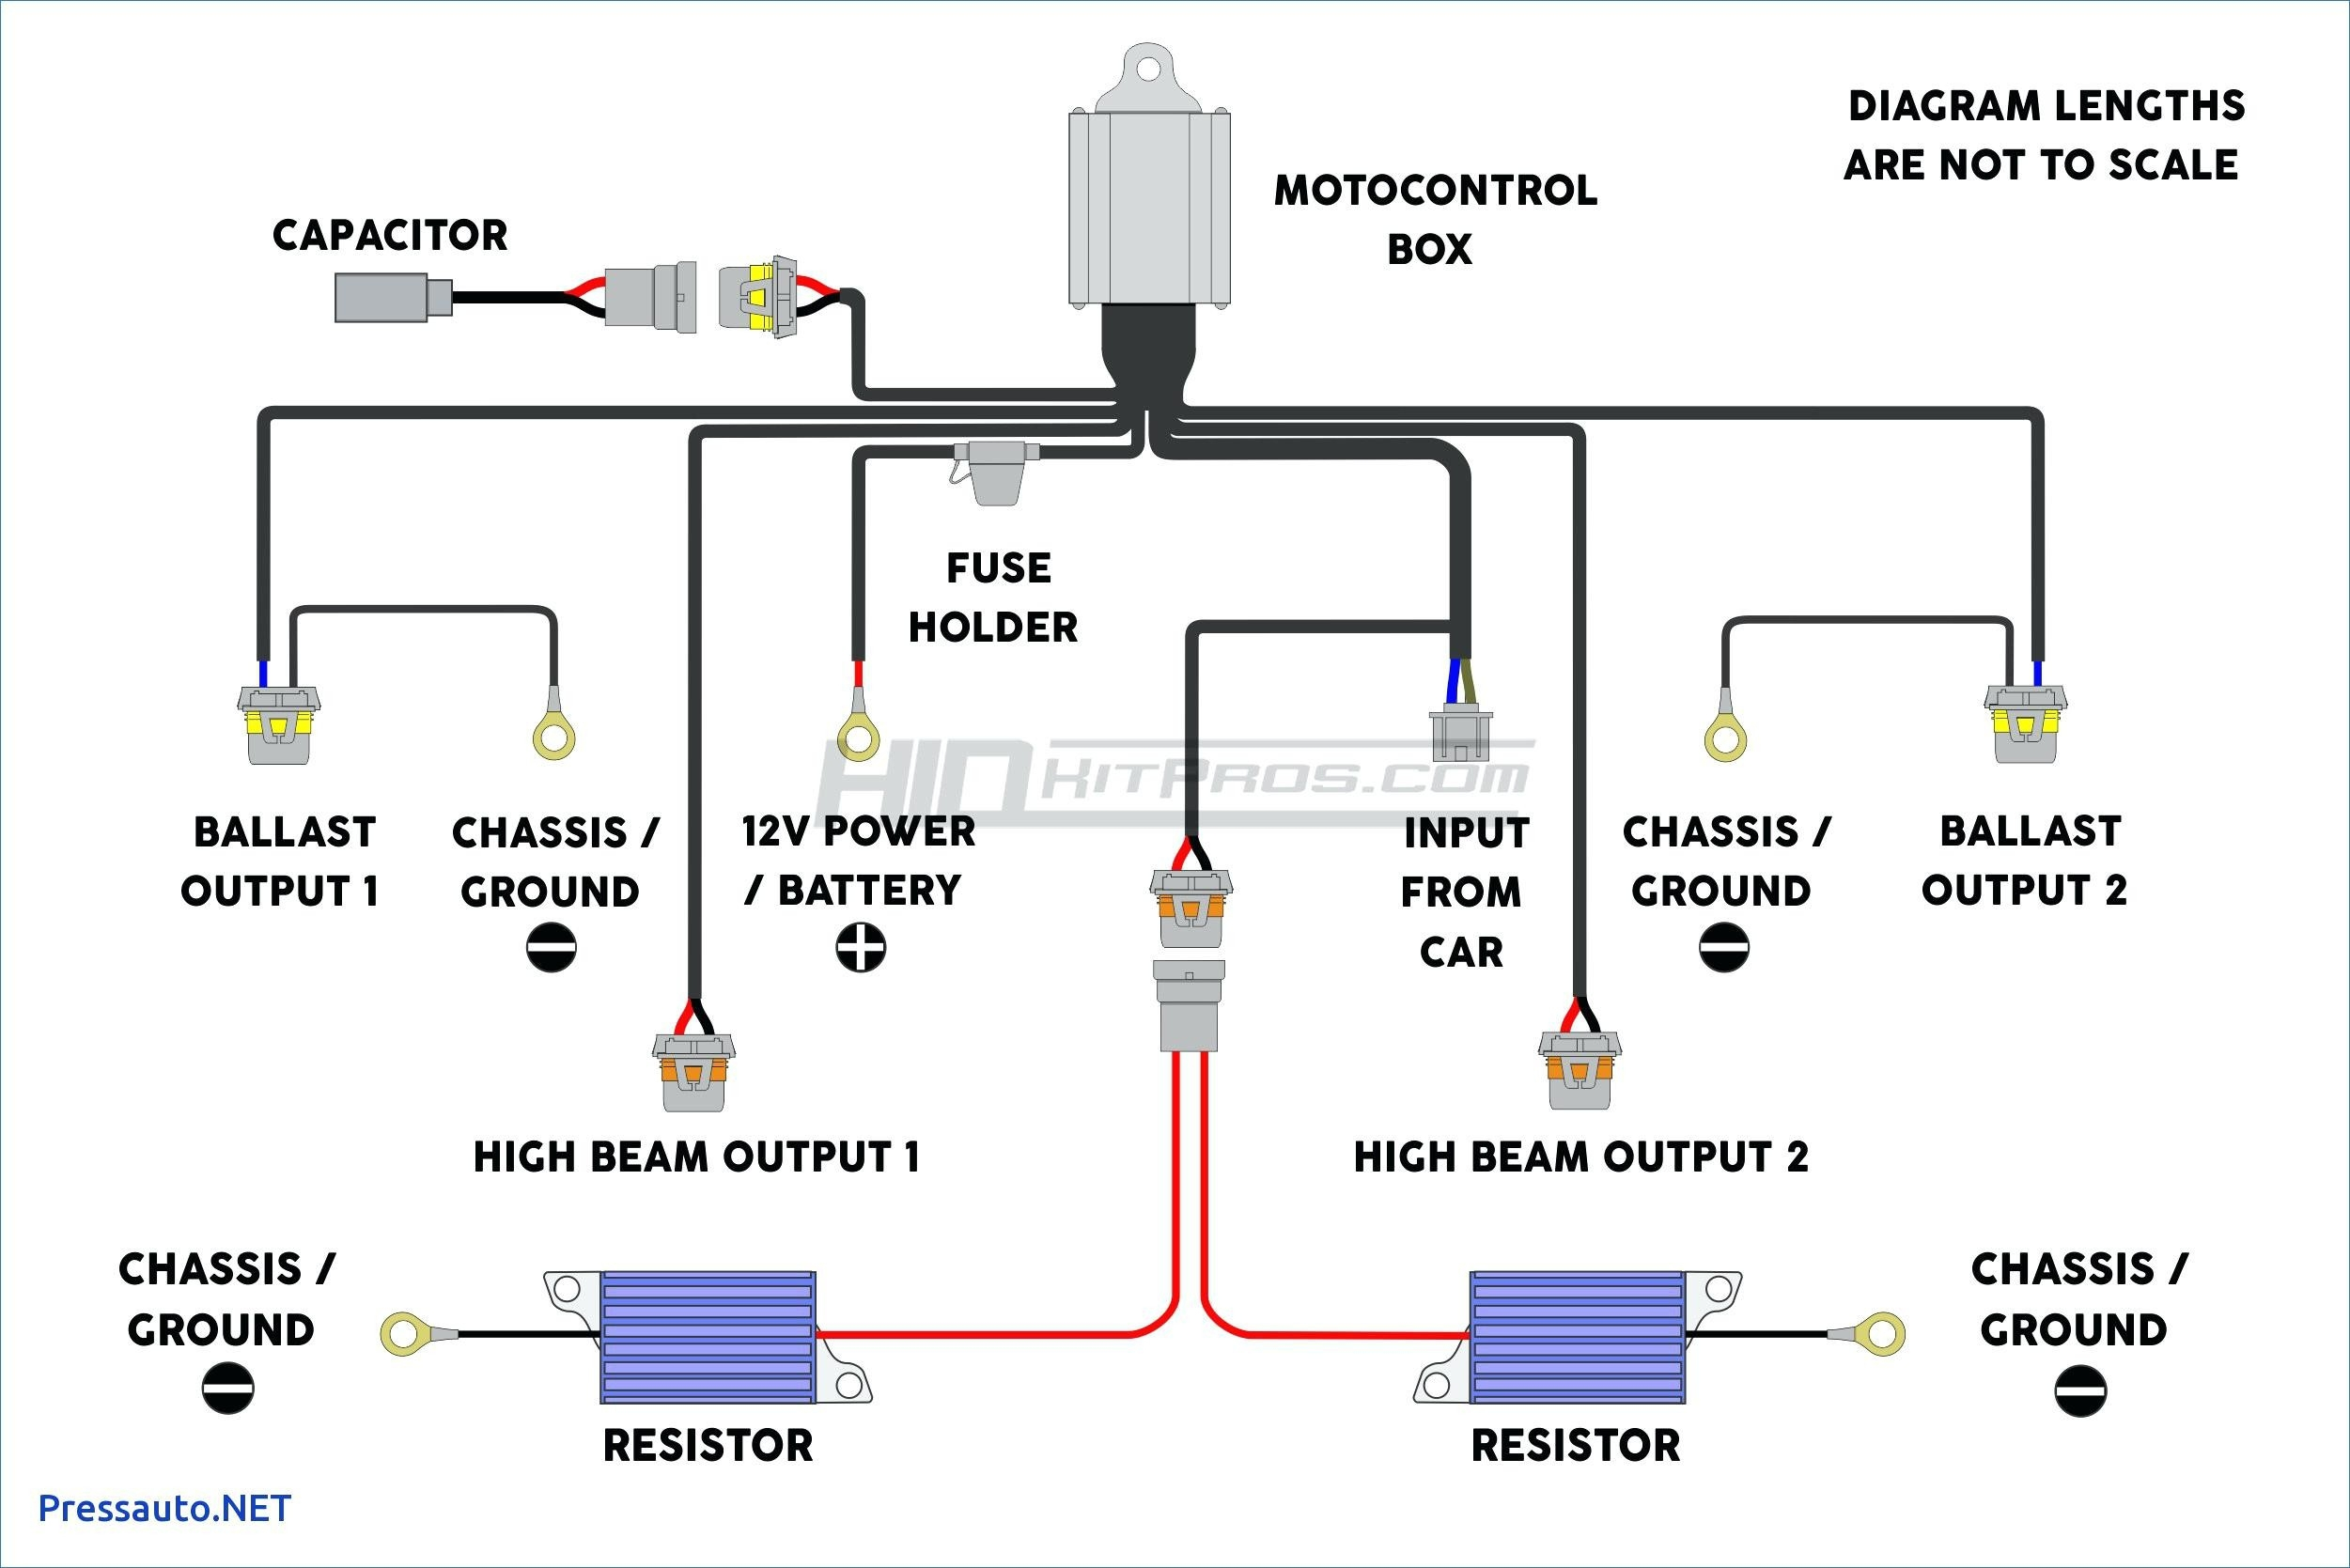 monarch pump wiring diagram meyer fuse box wiring diagram g11  meyer fuse box wiring diagram g11